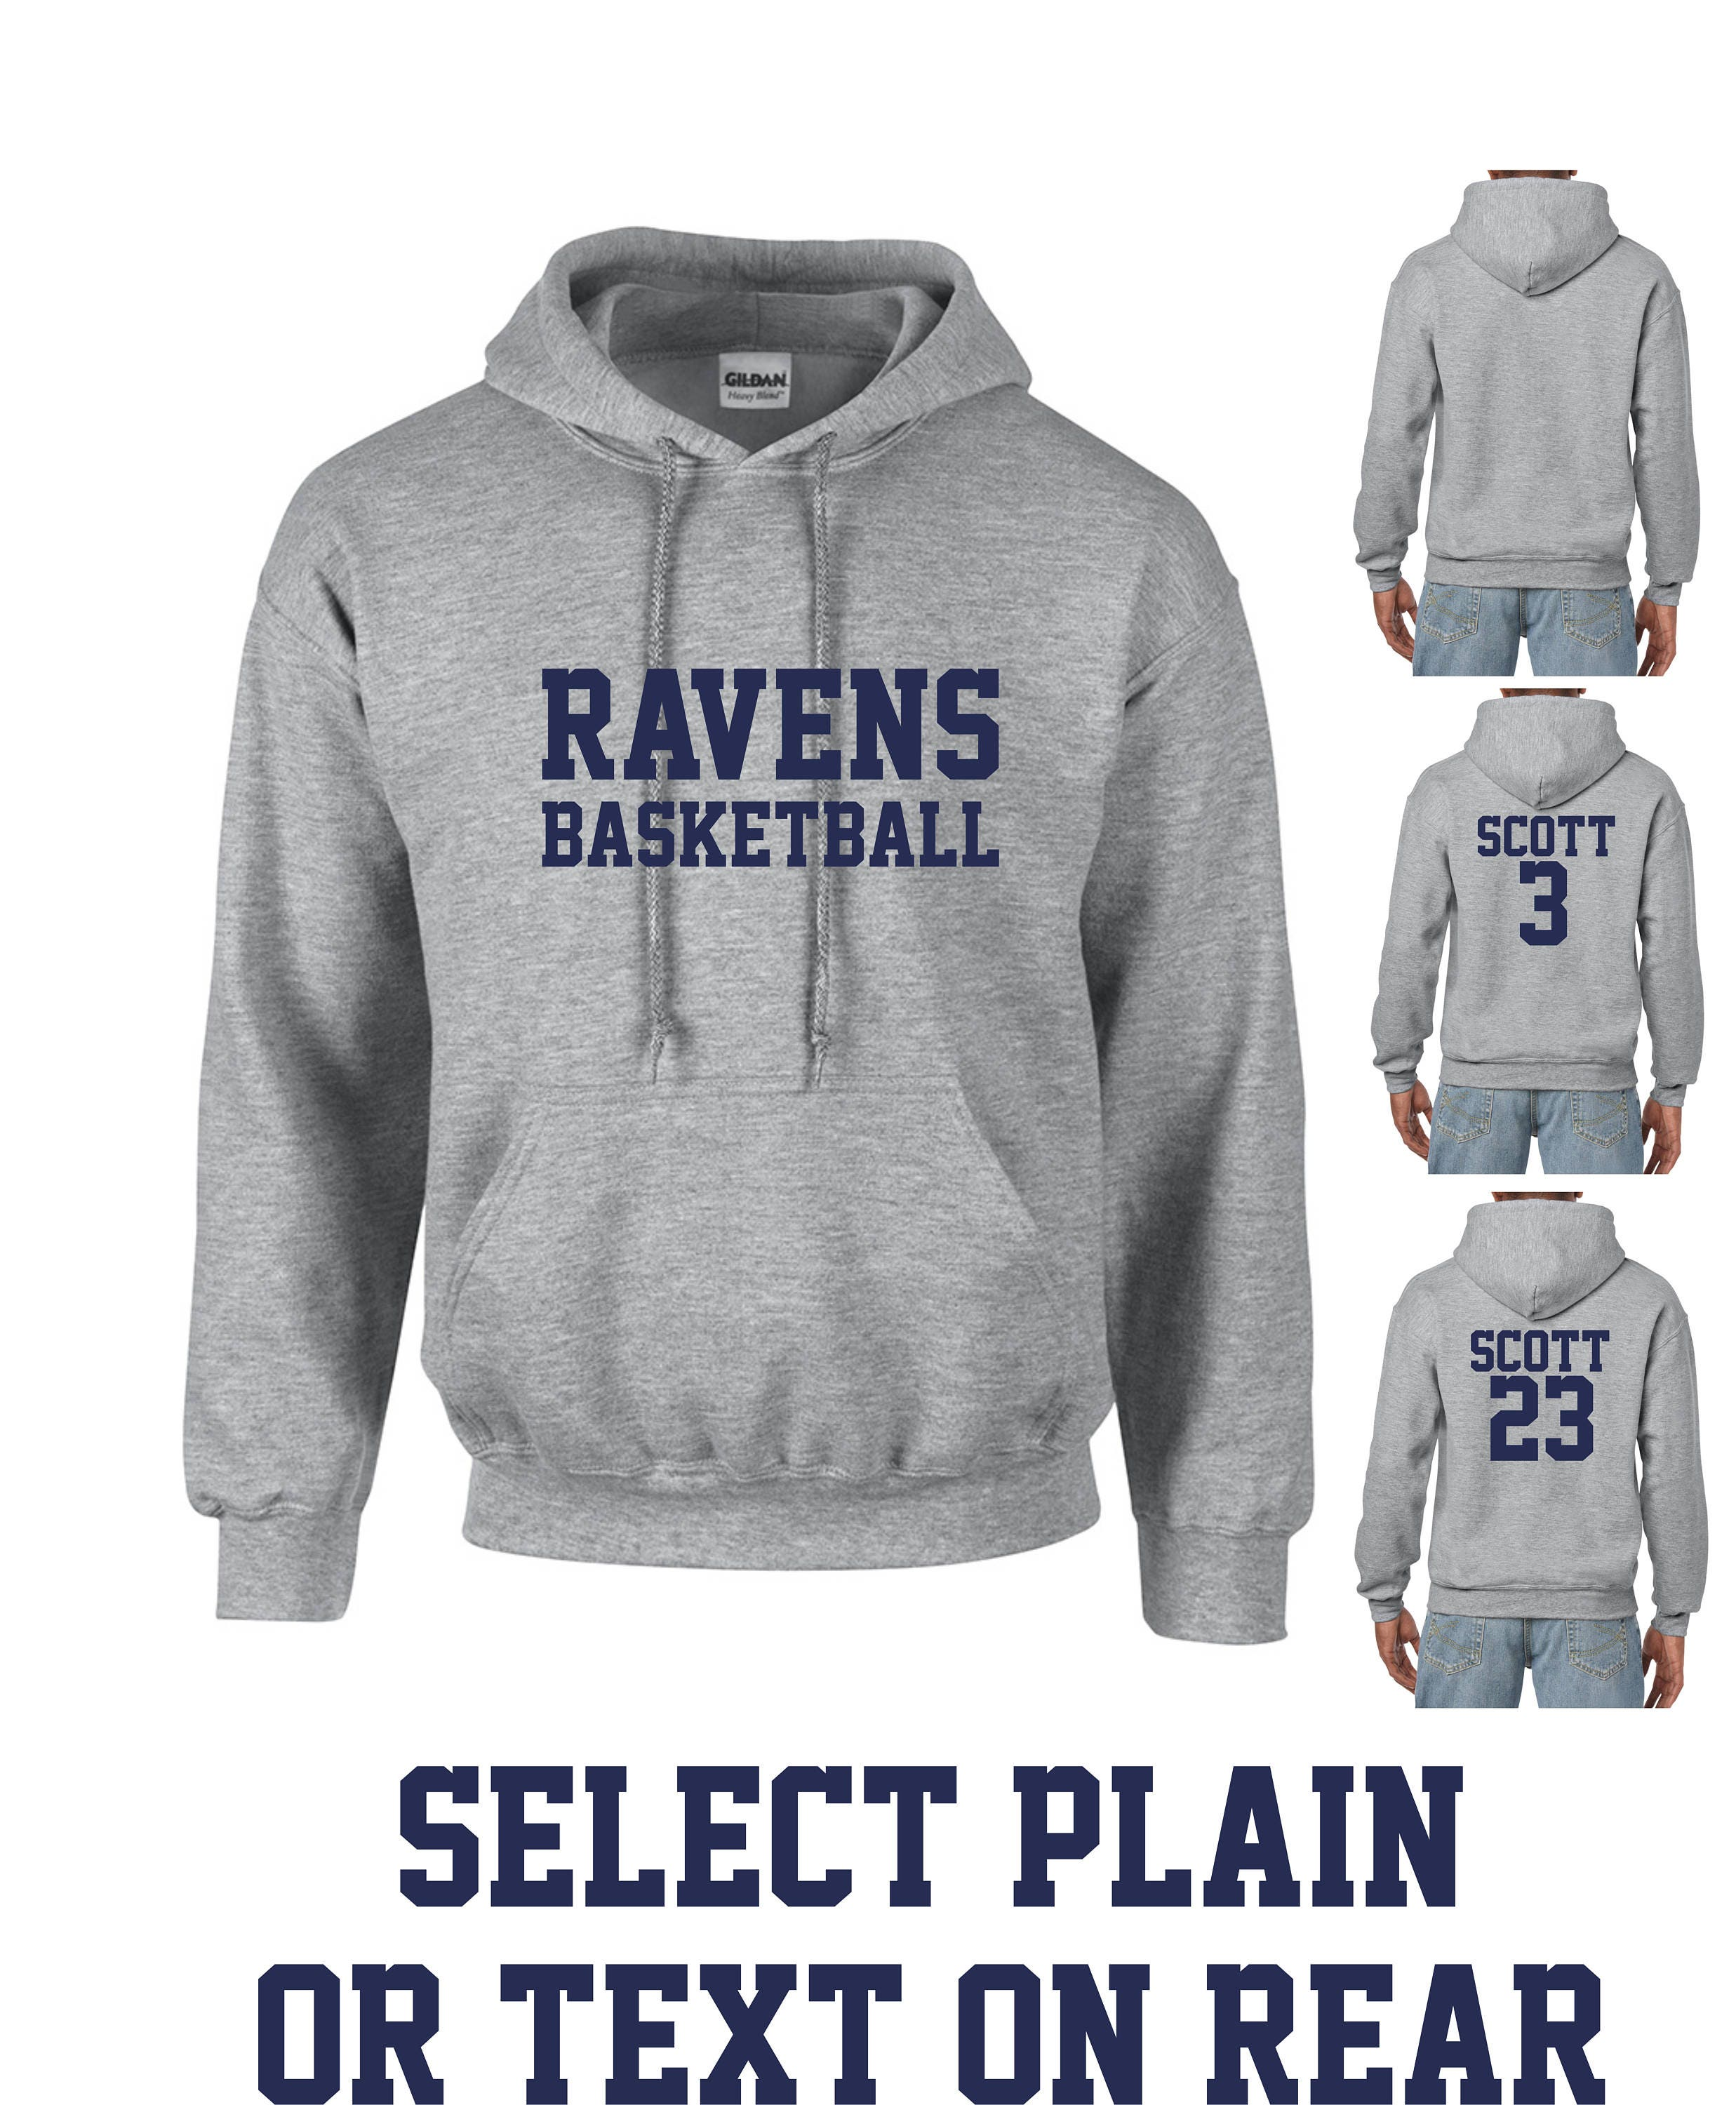 timeless design da920 9beef Ravens Basketball Hoodie Unisex Adult Grey Hooded Sweatshirt Front and Back  Print Options Lucas Nathan Scott One Tree Hill Inspired